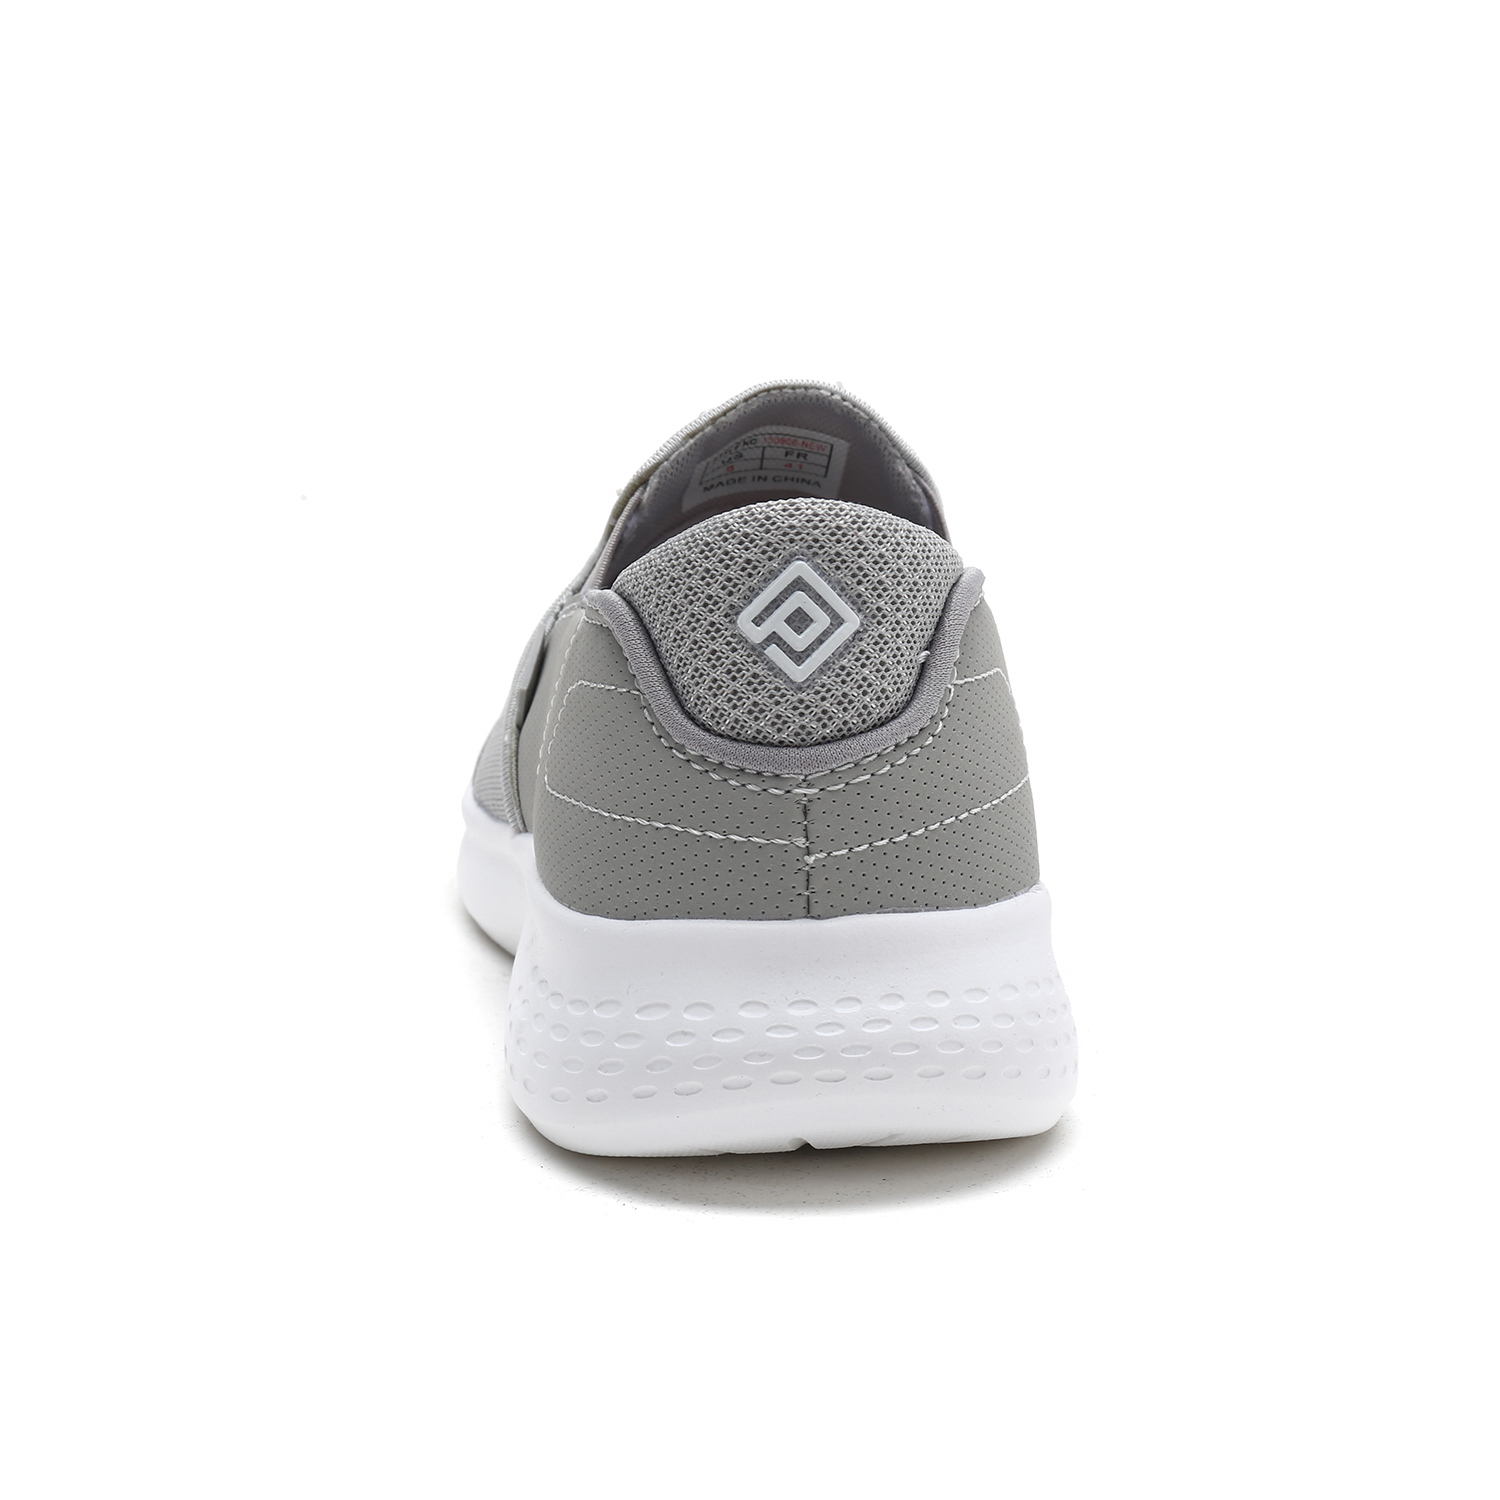 Dream-Pairs-Men-039-s-150908-New-Walking-Running-Shoes-Fashion-Sneakers